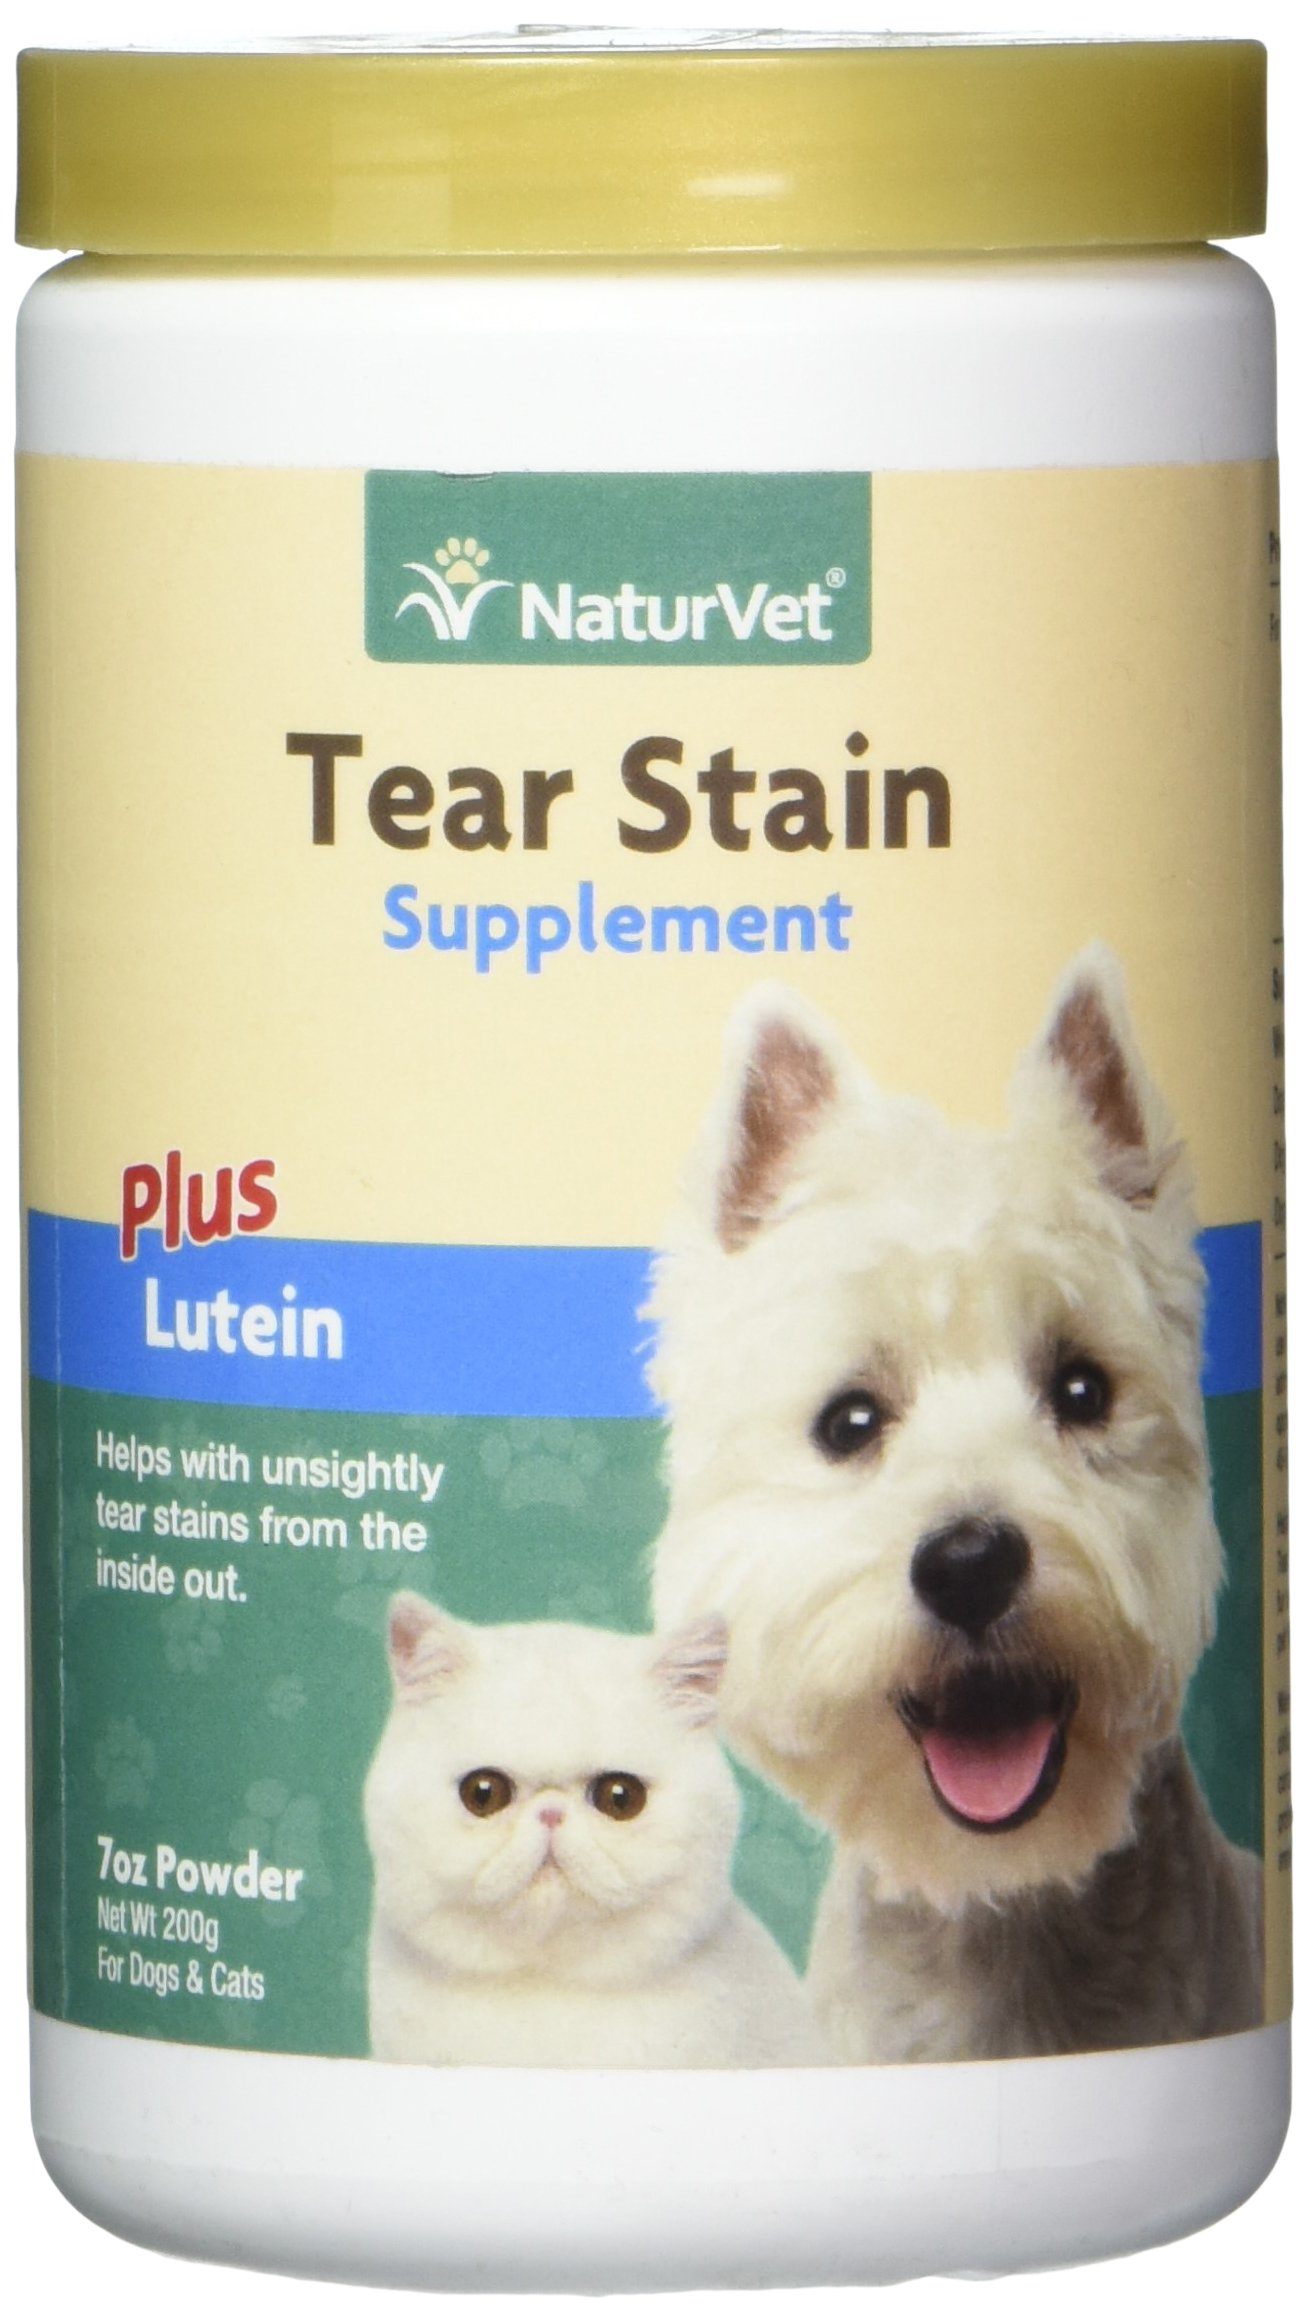 NaturVet Tear Stain Supplement Plus Lutein for Dogs and Cats 200 gm Powder Ma